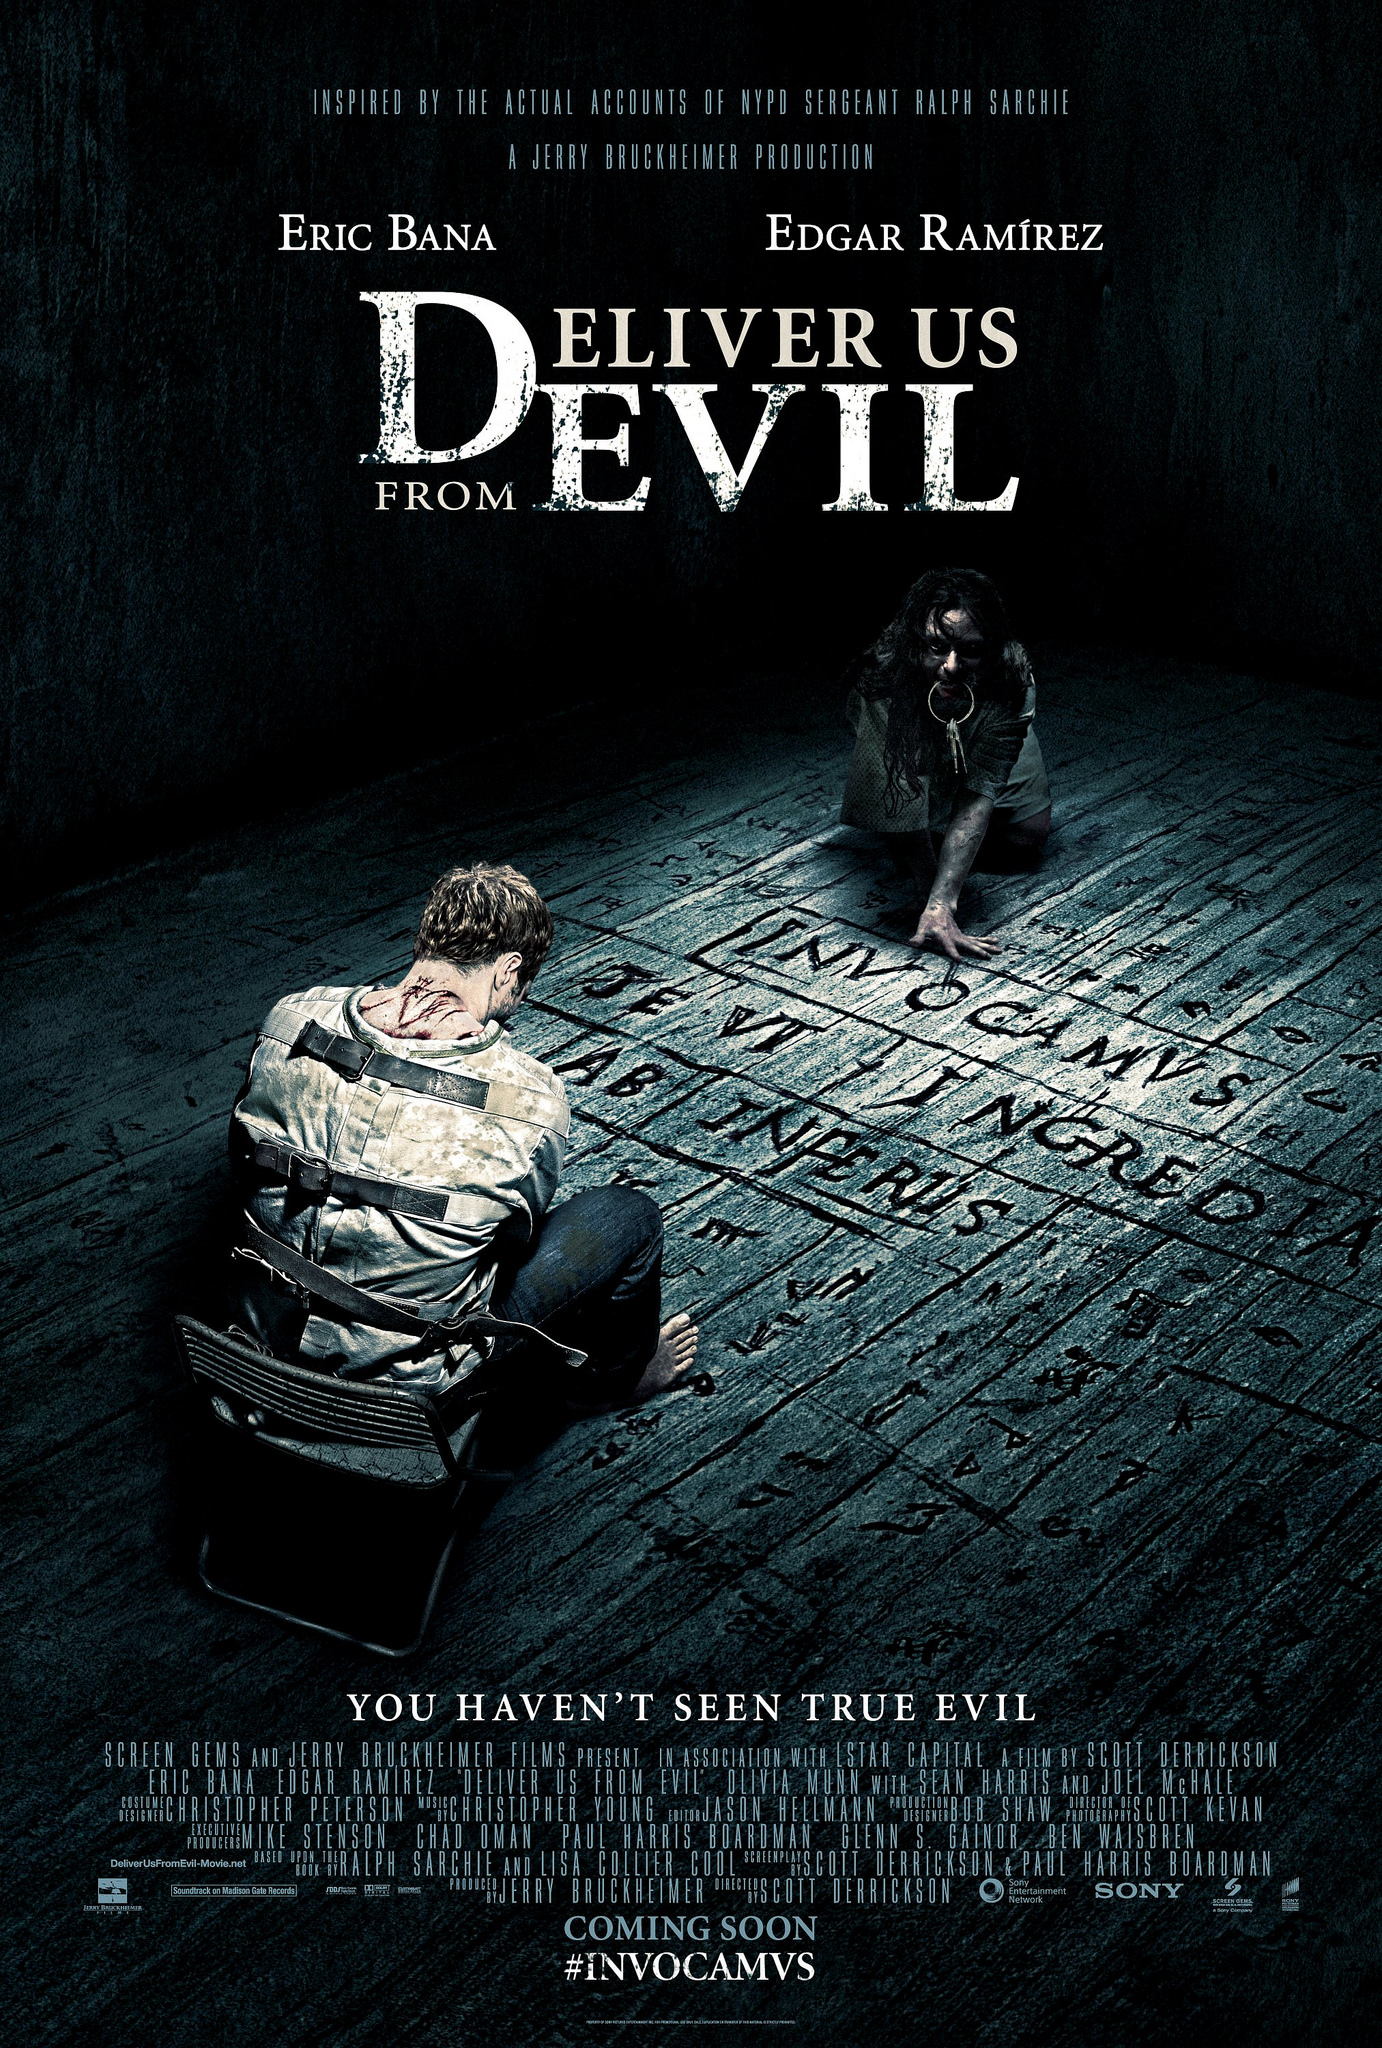 Deliver Us from Evil-Official Poster Banner PROMO XLG-27MAIO2014